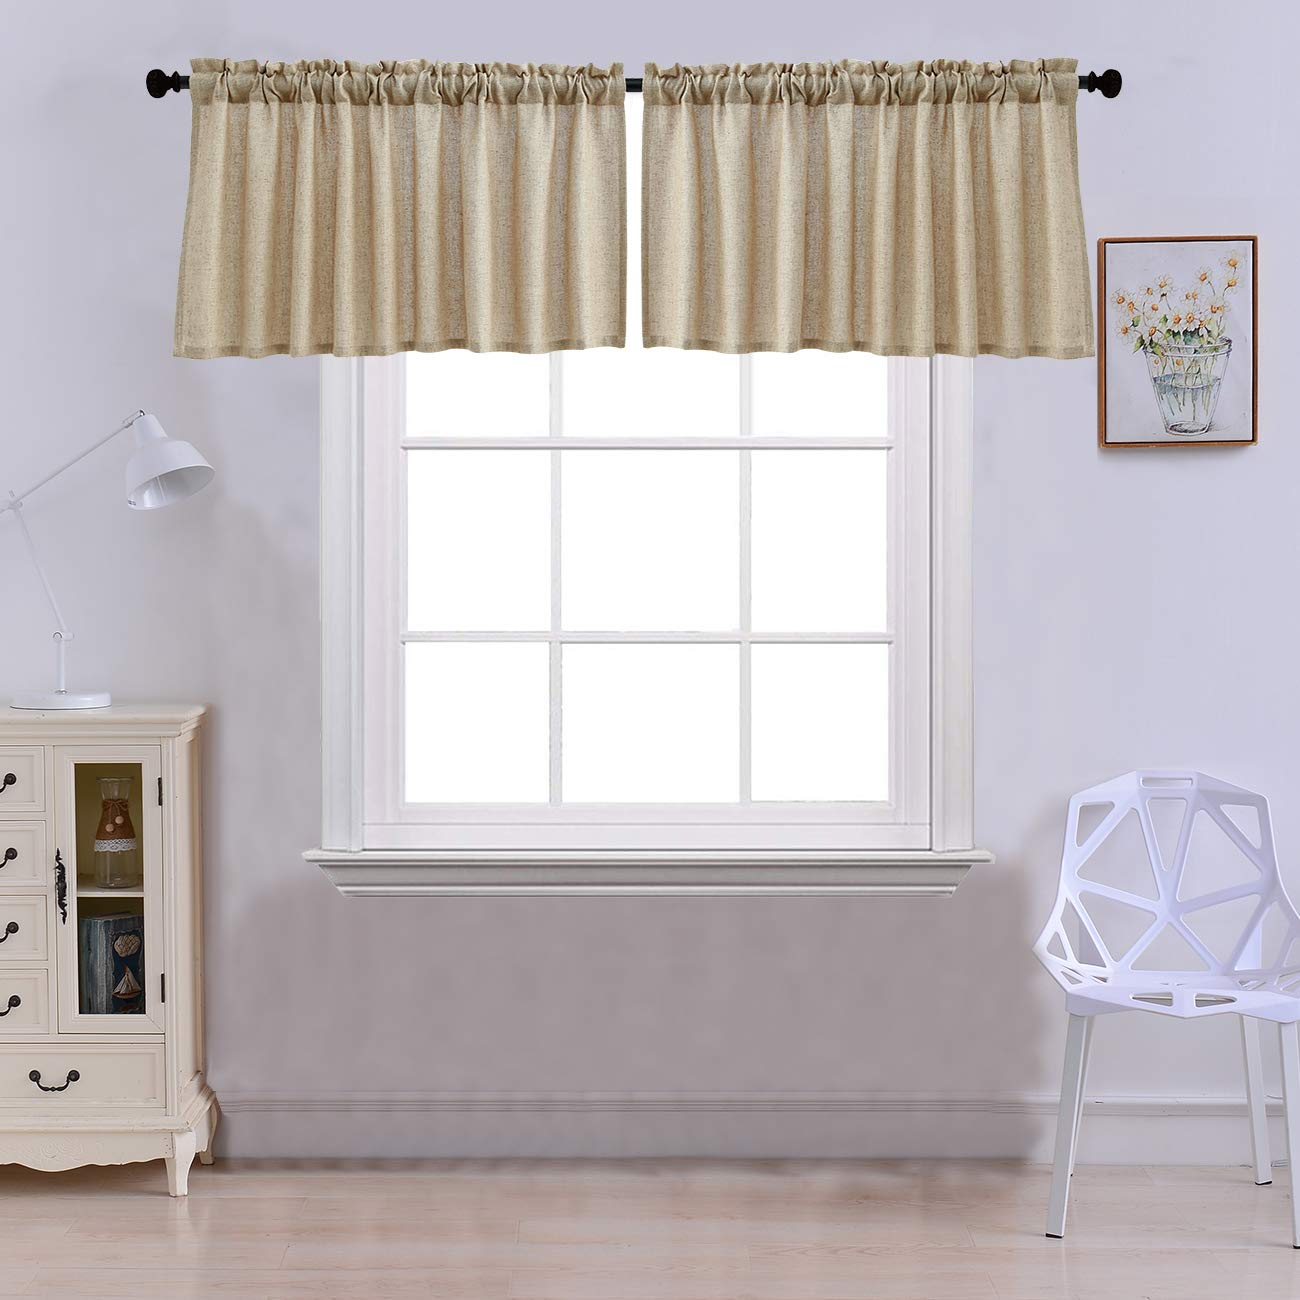 Curtain Valances for Windows Burlap Linen Window Curtains for Kitchen Living Dining Room 52 x 18 inches Rod Pocket Set of 2 Coffee